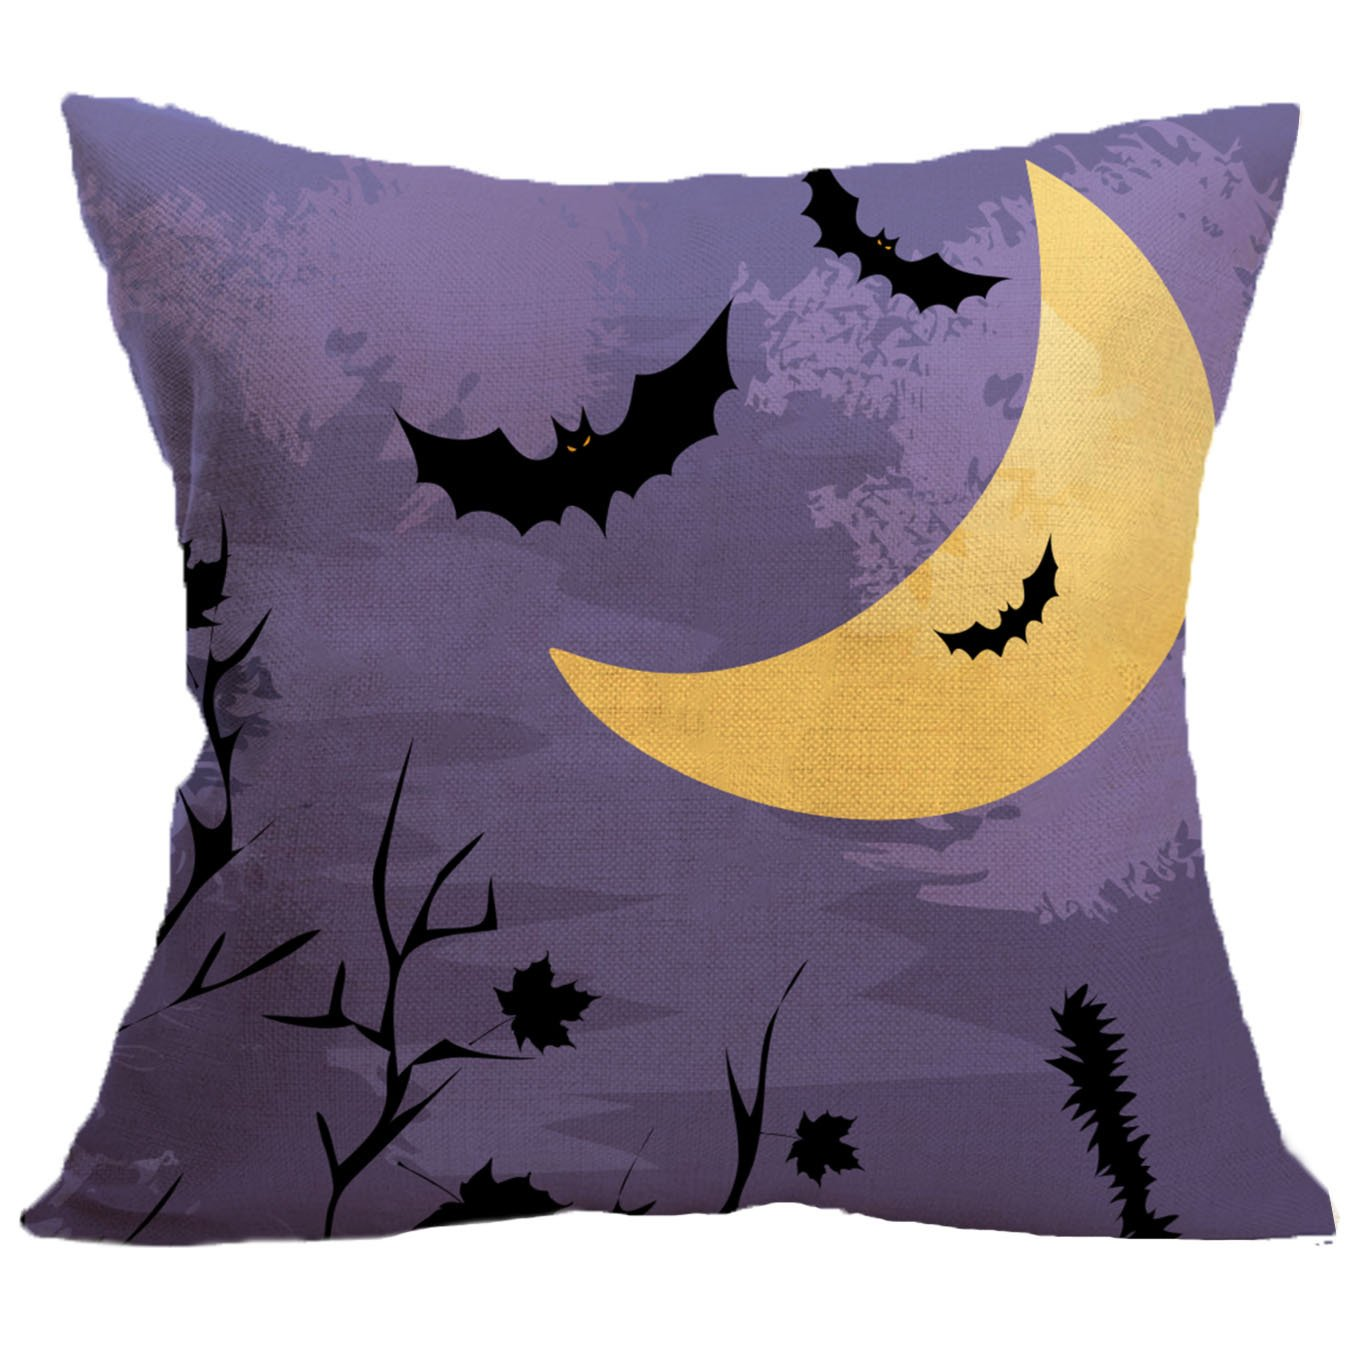 MIFAVOR Halloween Pillow Covers 18x18 Set of 4 Linen Blend Square Burlap Decorative Throw Pillowslip Cushion Cover